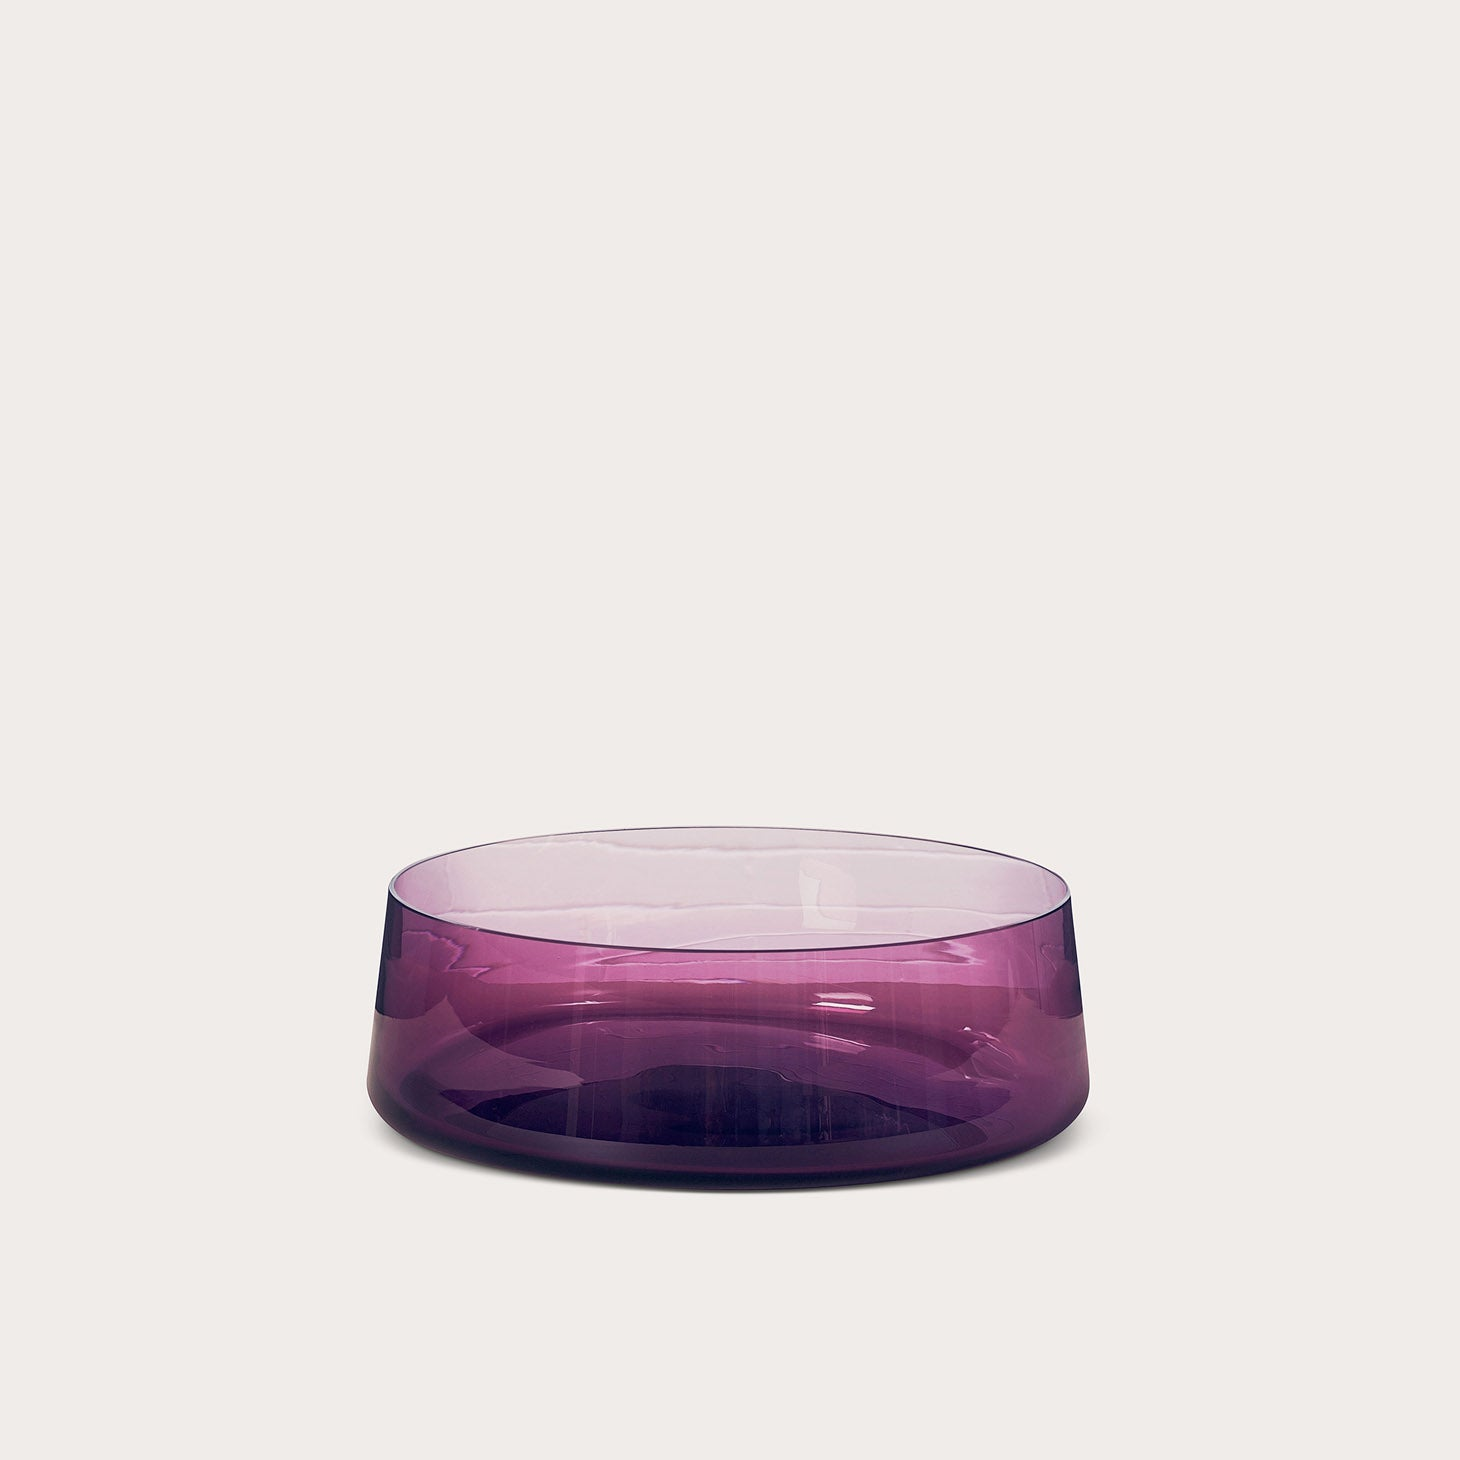 Bowl Accessories Classicon Designer Furniture Sku: 001-100-10053